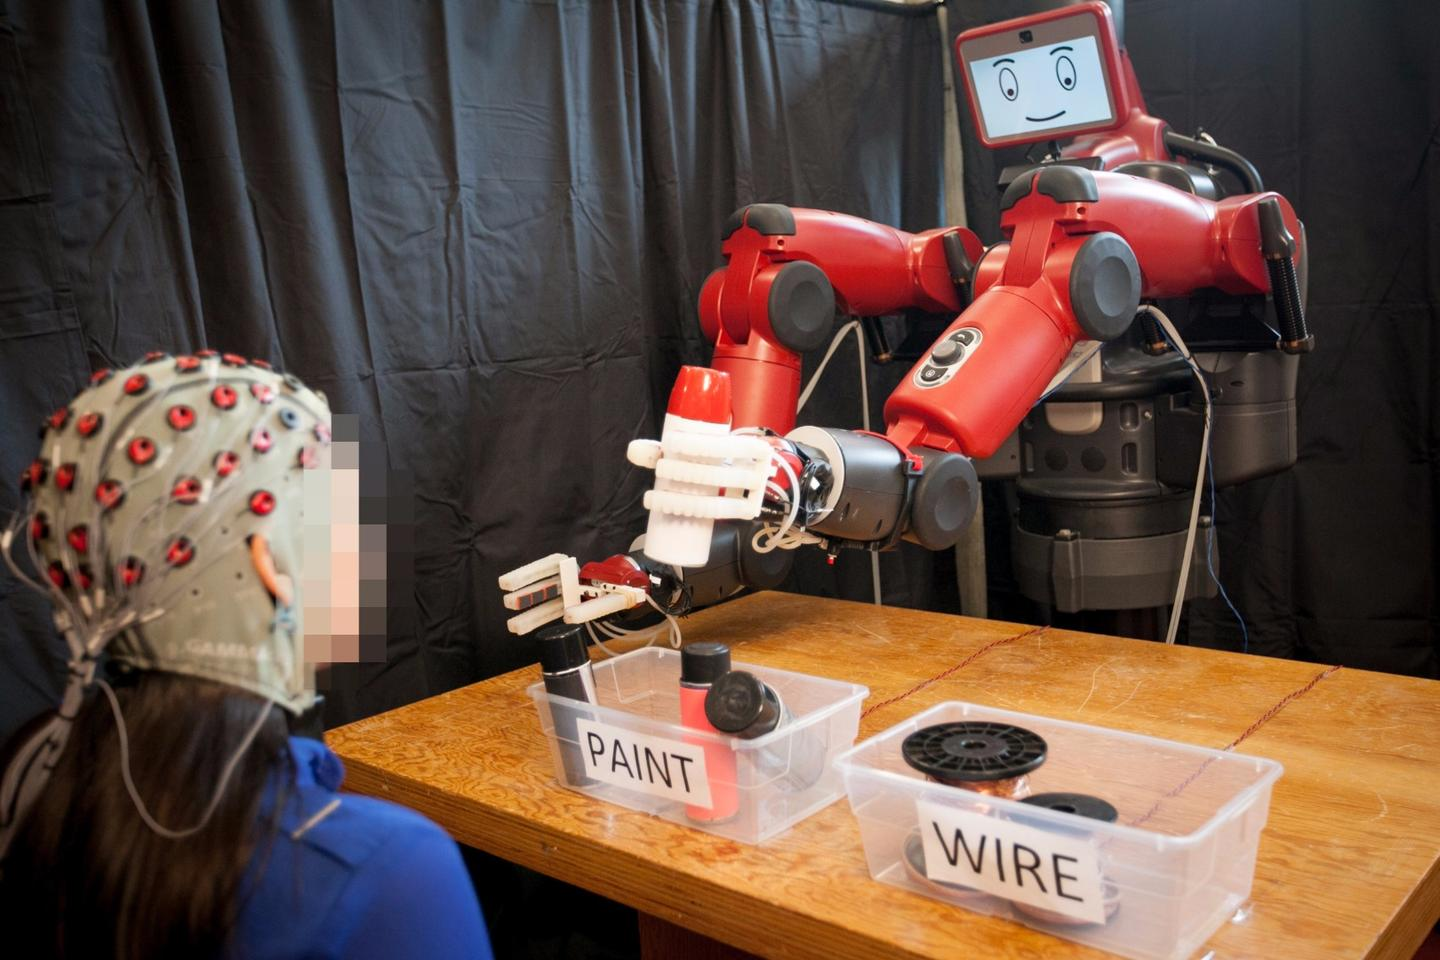 The feedback system enables human operators to correct the robot's mistake in real-time